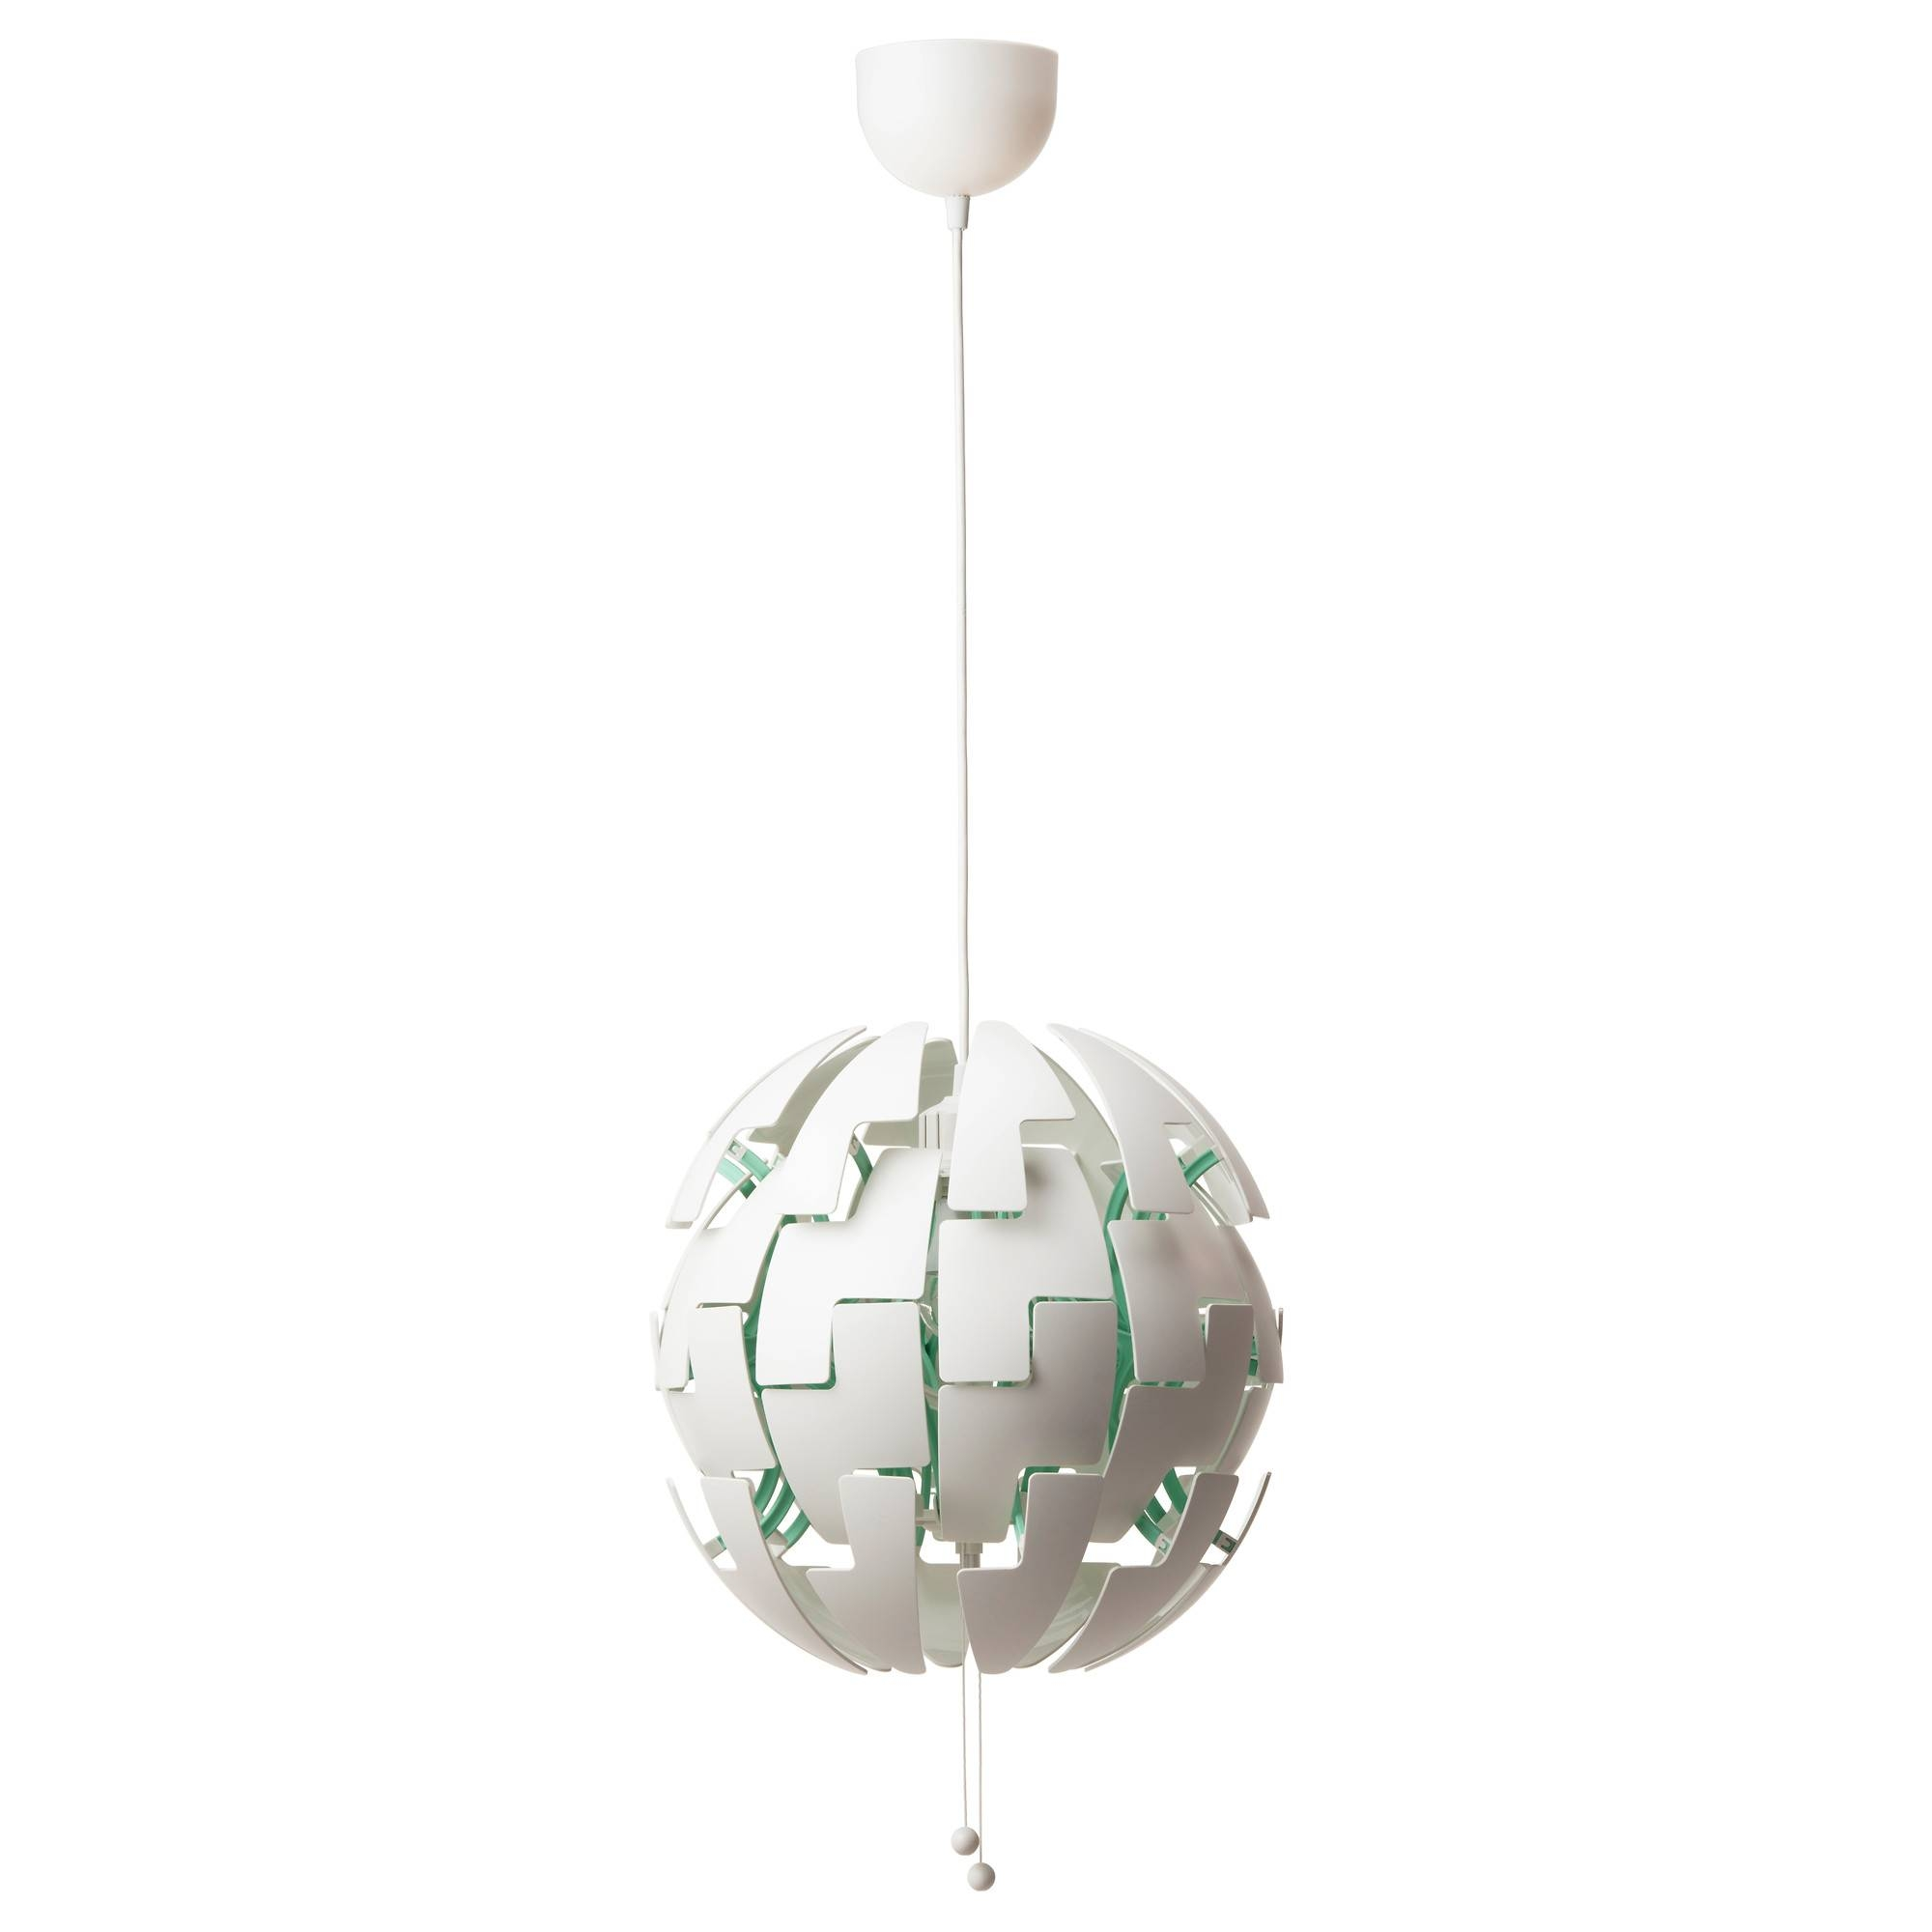 Ikea Ps 2014 Pendant Lamp - White/orange - Ikea in Ikea Globe Pendant Lights (Image 6 of 15)